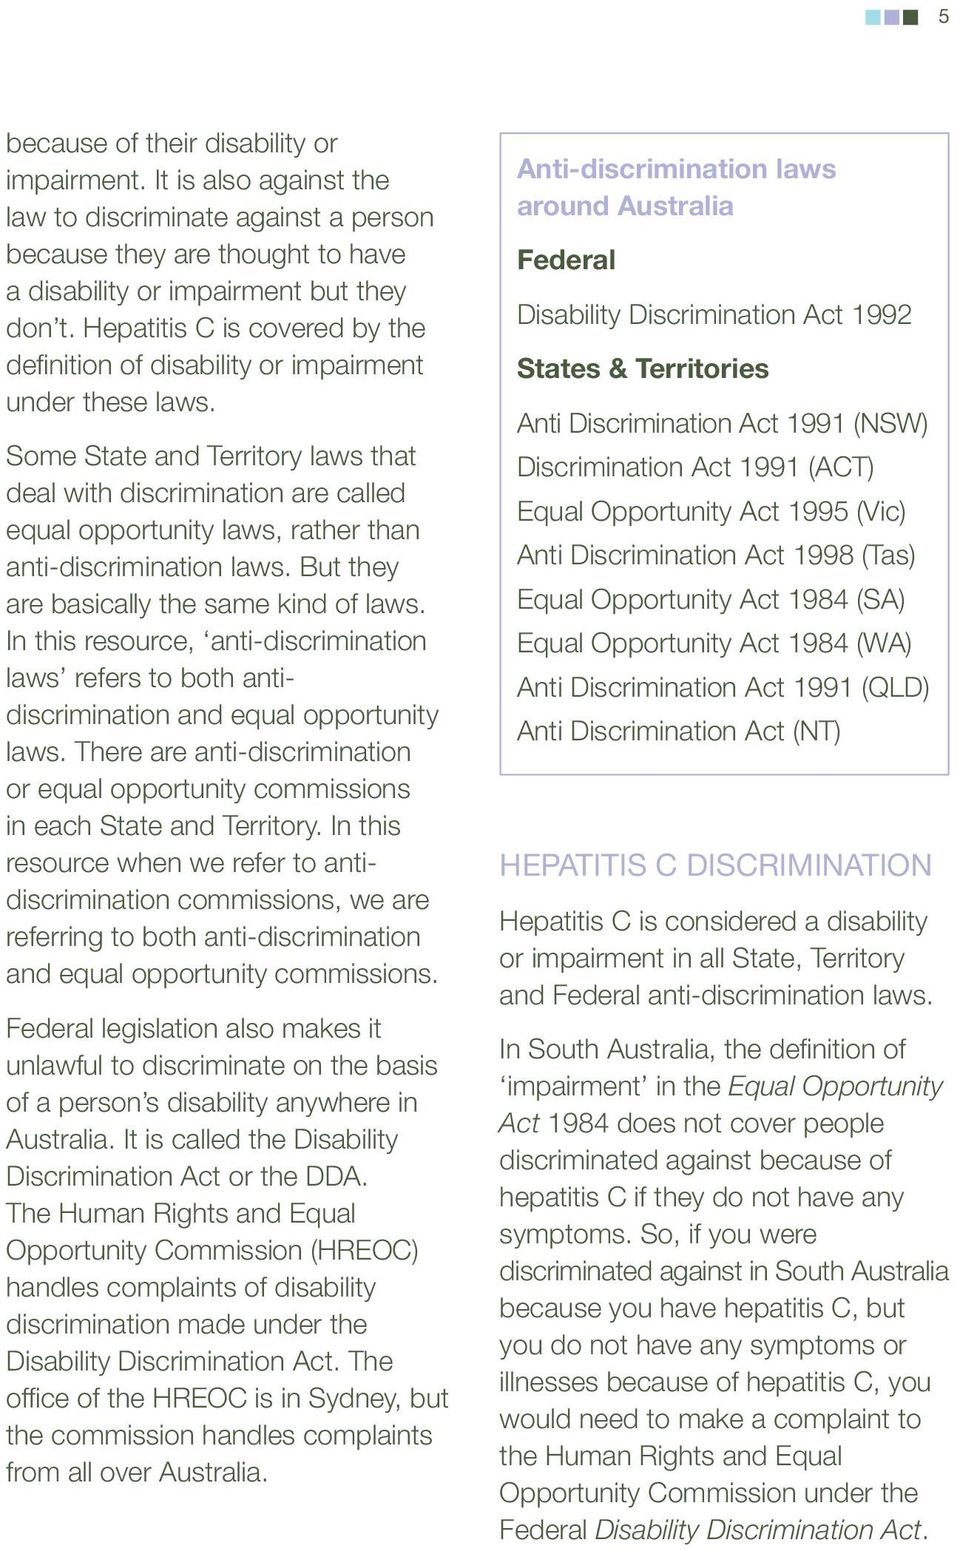 Some State and Territory laws that deal with discrimination are called equal opportunity laws, rather than anti-discrimination laws. But they are basically the same kind of laws.